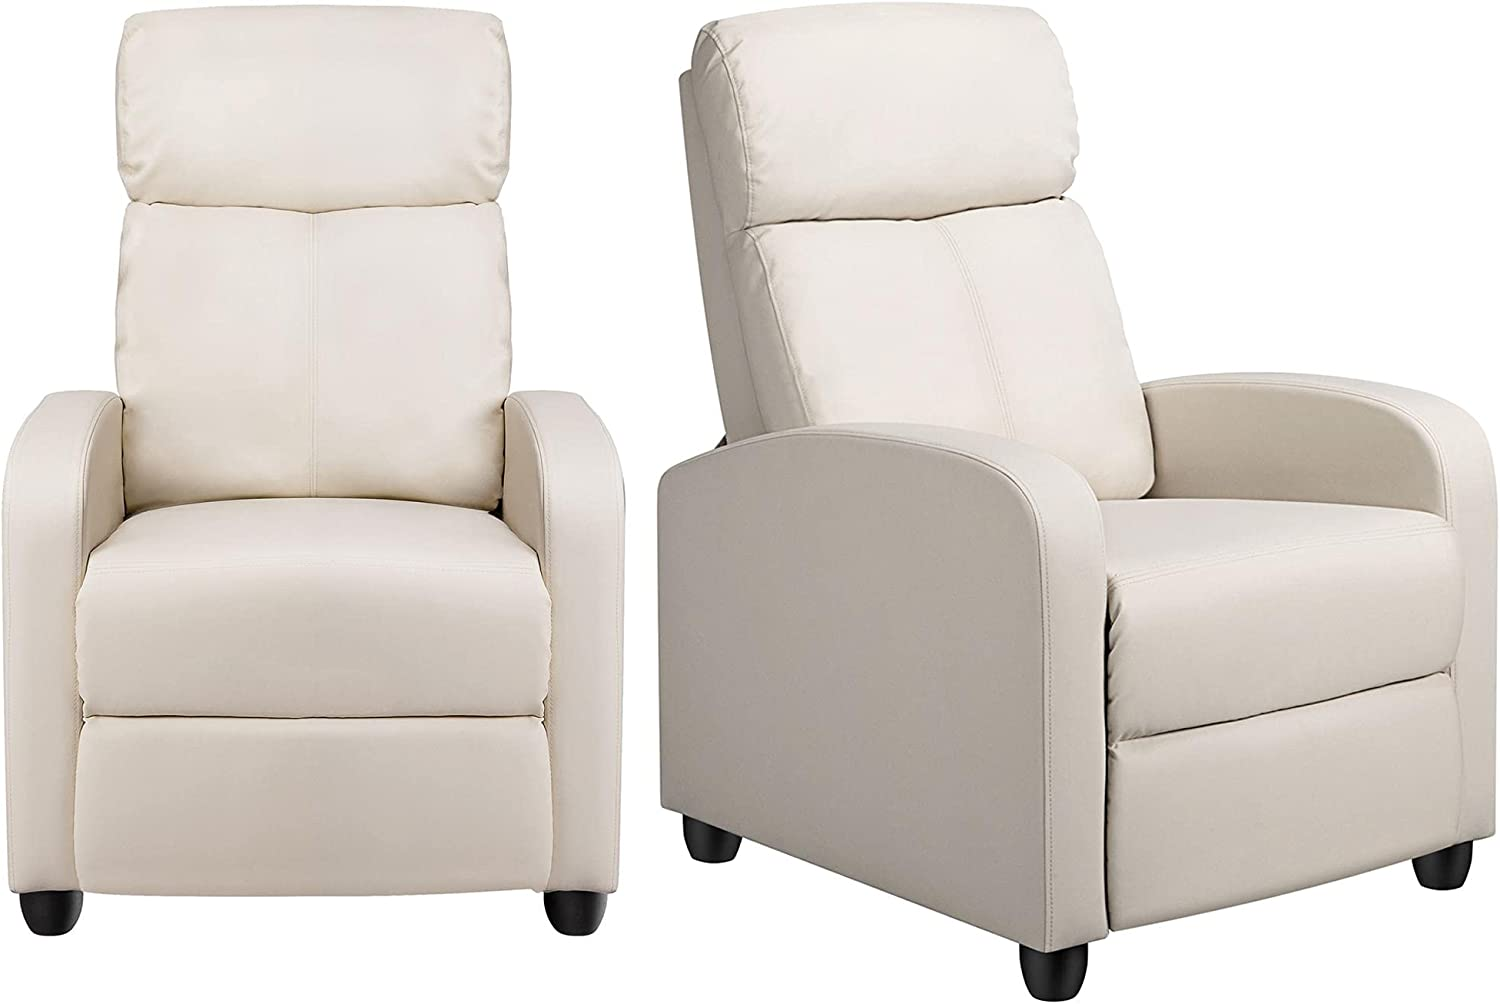 YAHEETECH PU Leather Reclining Chair Single Sofa for Living Room Padded Seat with Pocket Spring for Small Space Living Room Bedroom Home Theater Beige